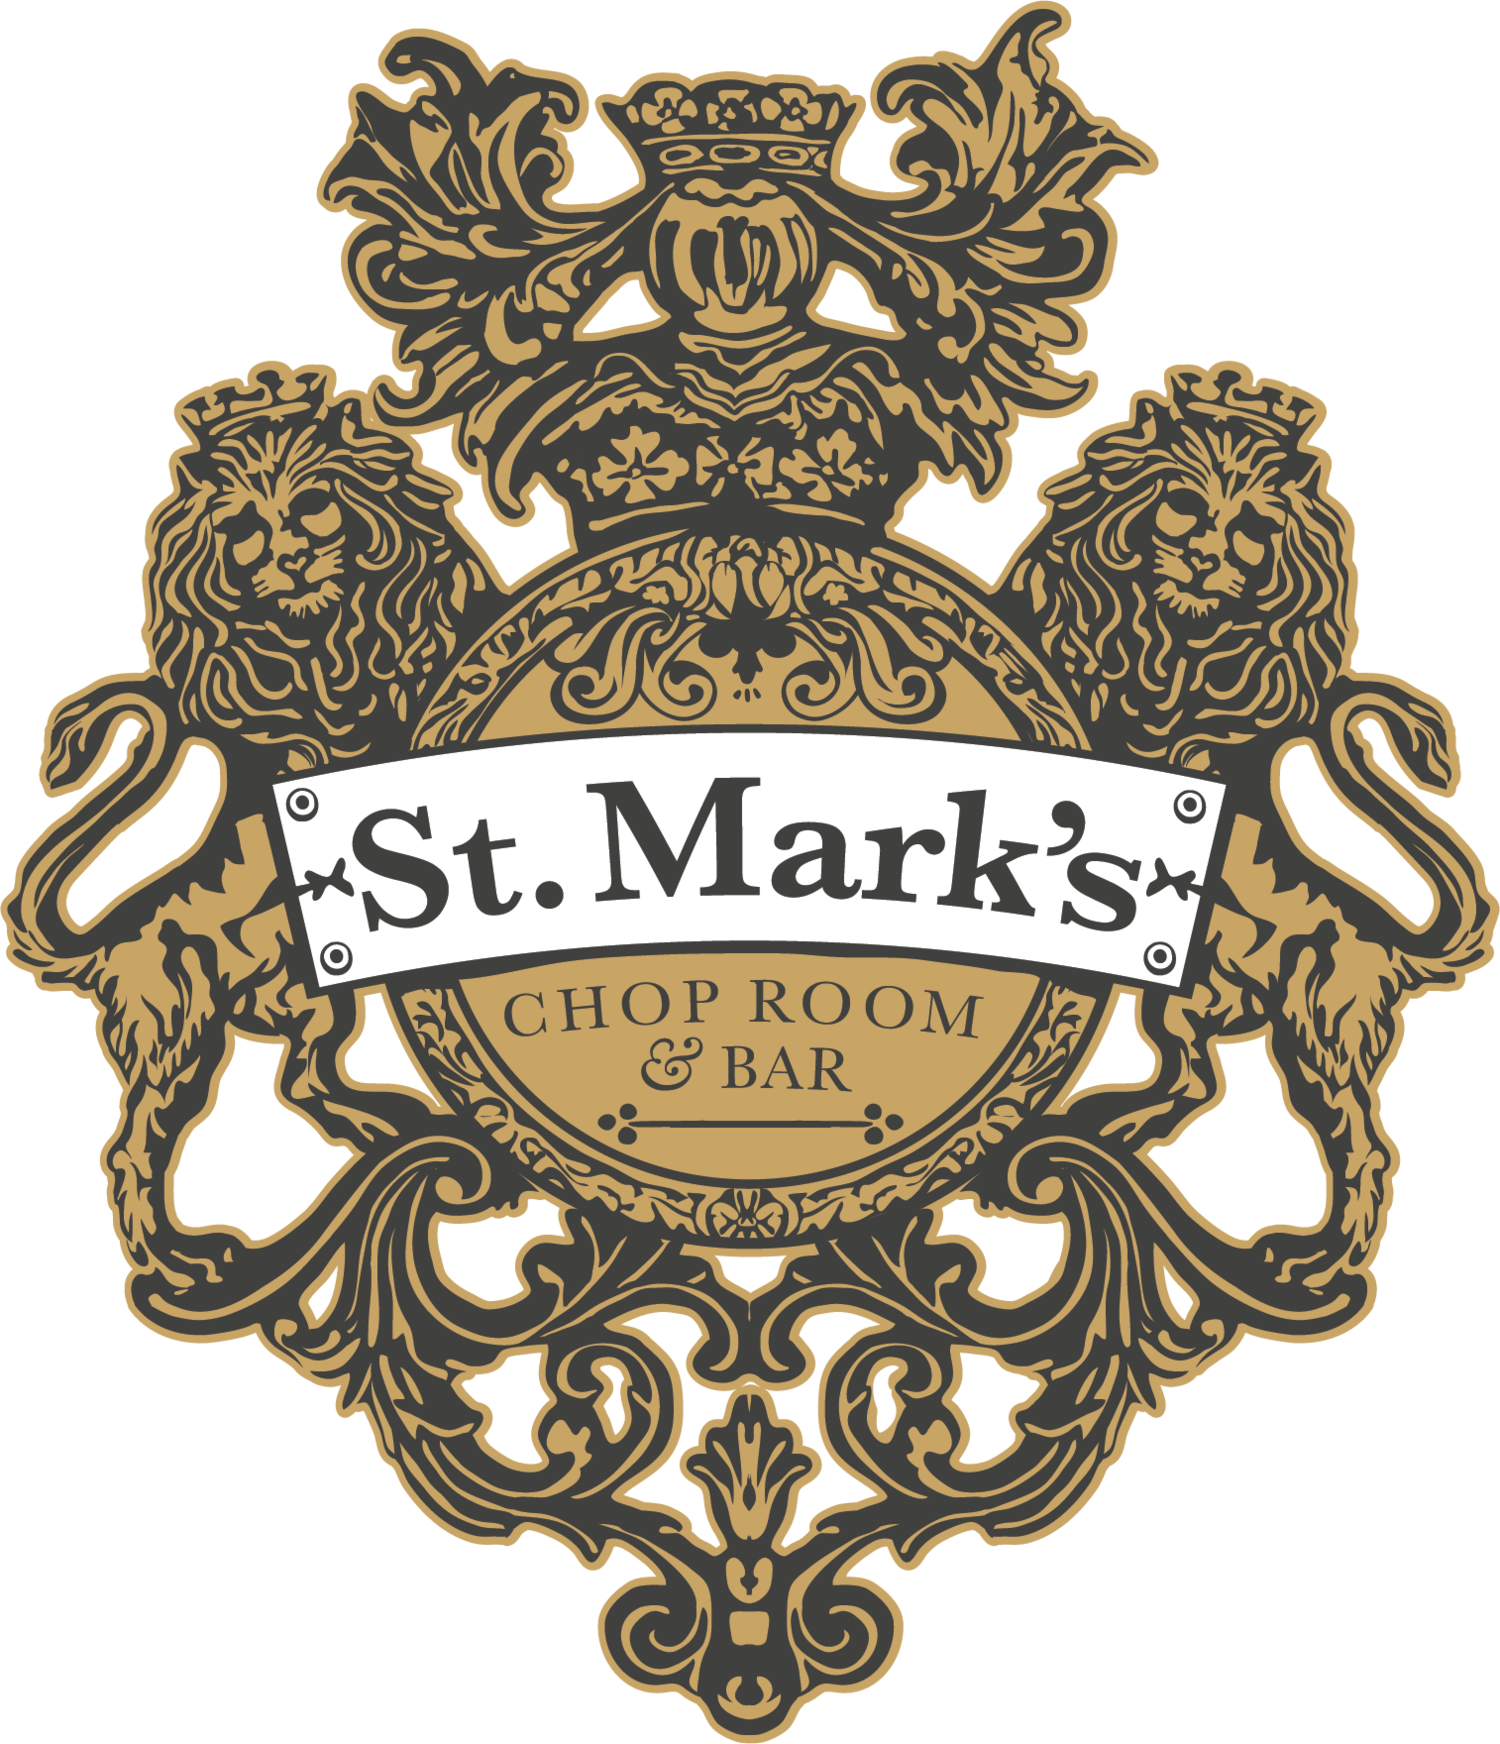 St. Mark's Chop Room